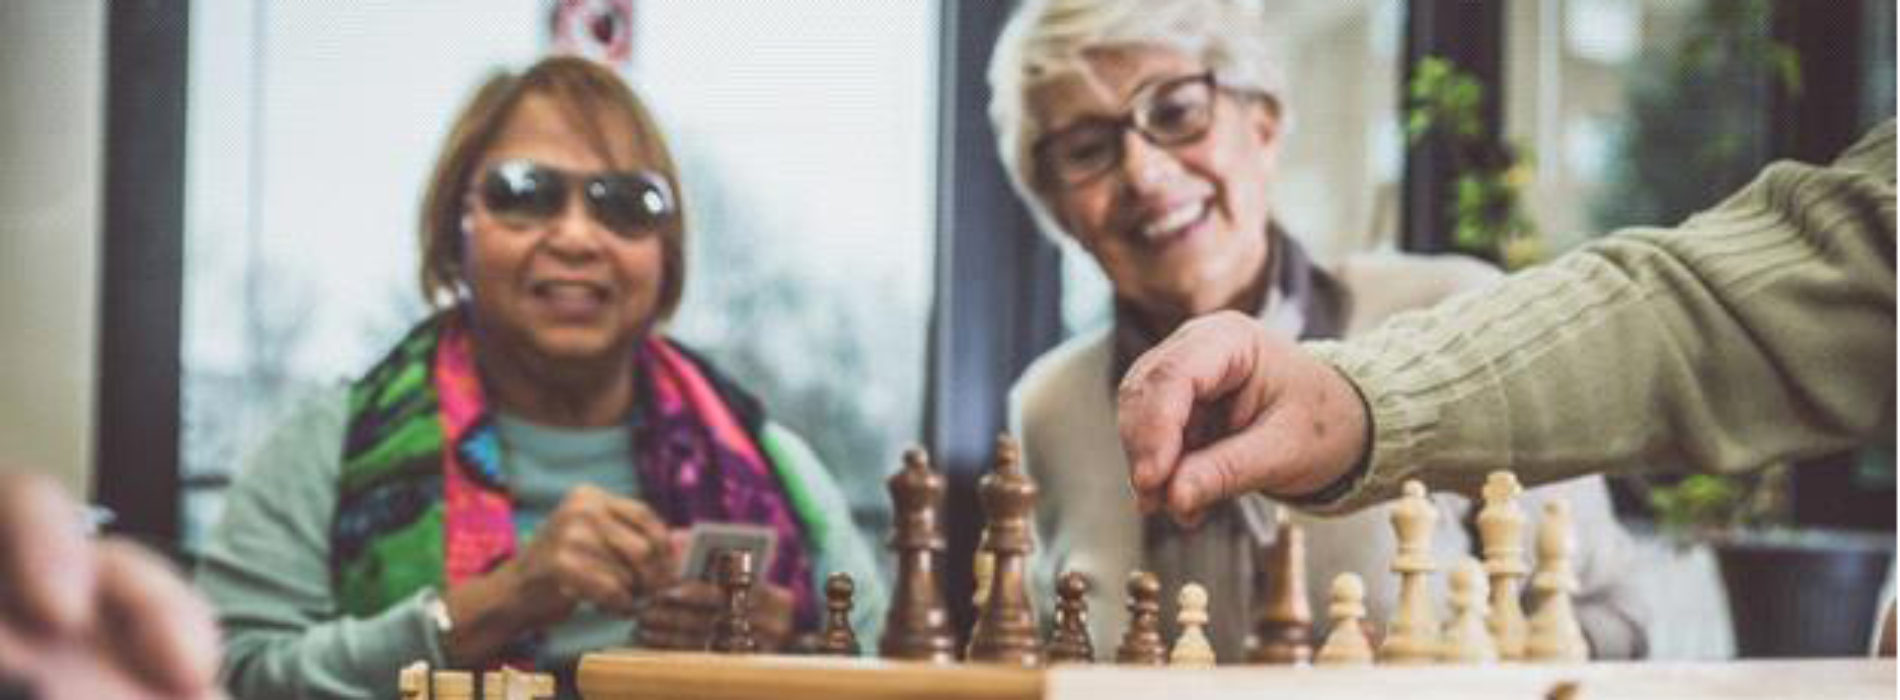 6 tips for caring for an elderly parent